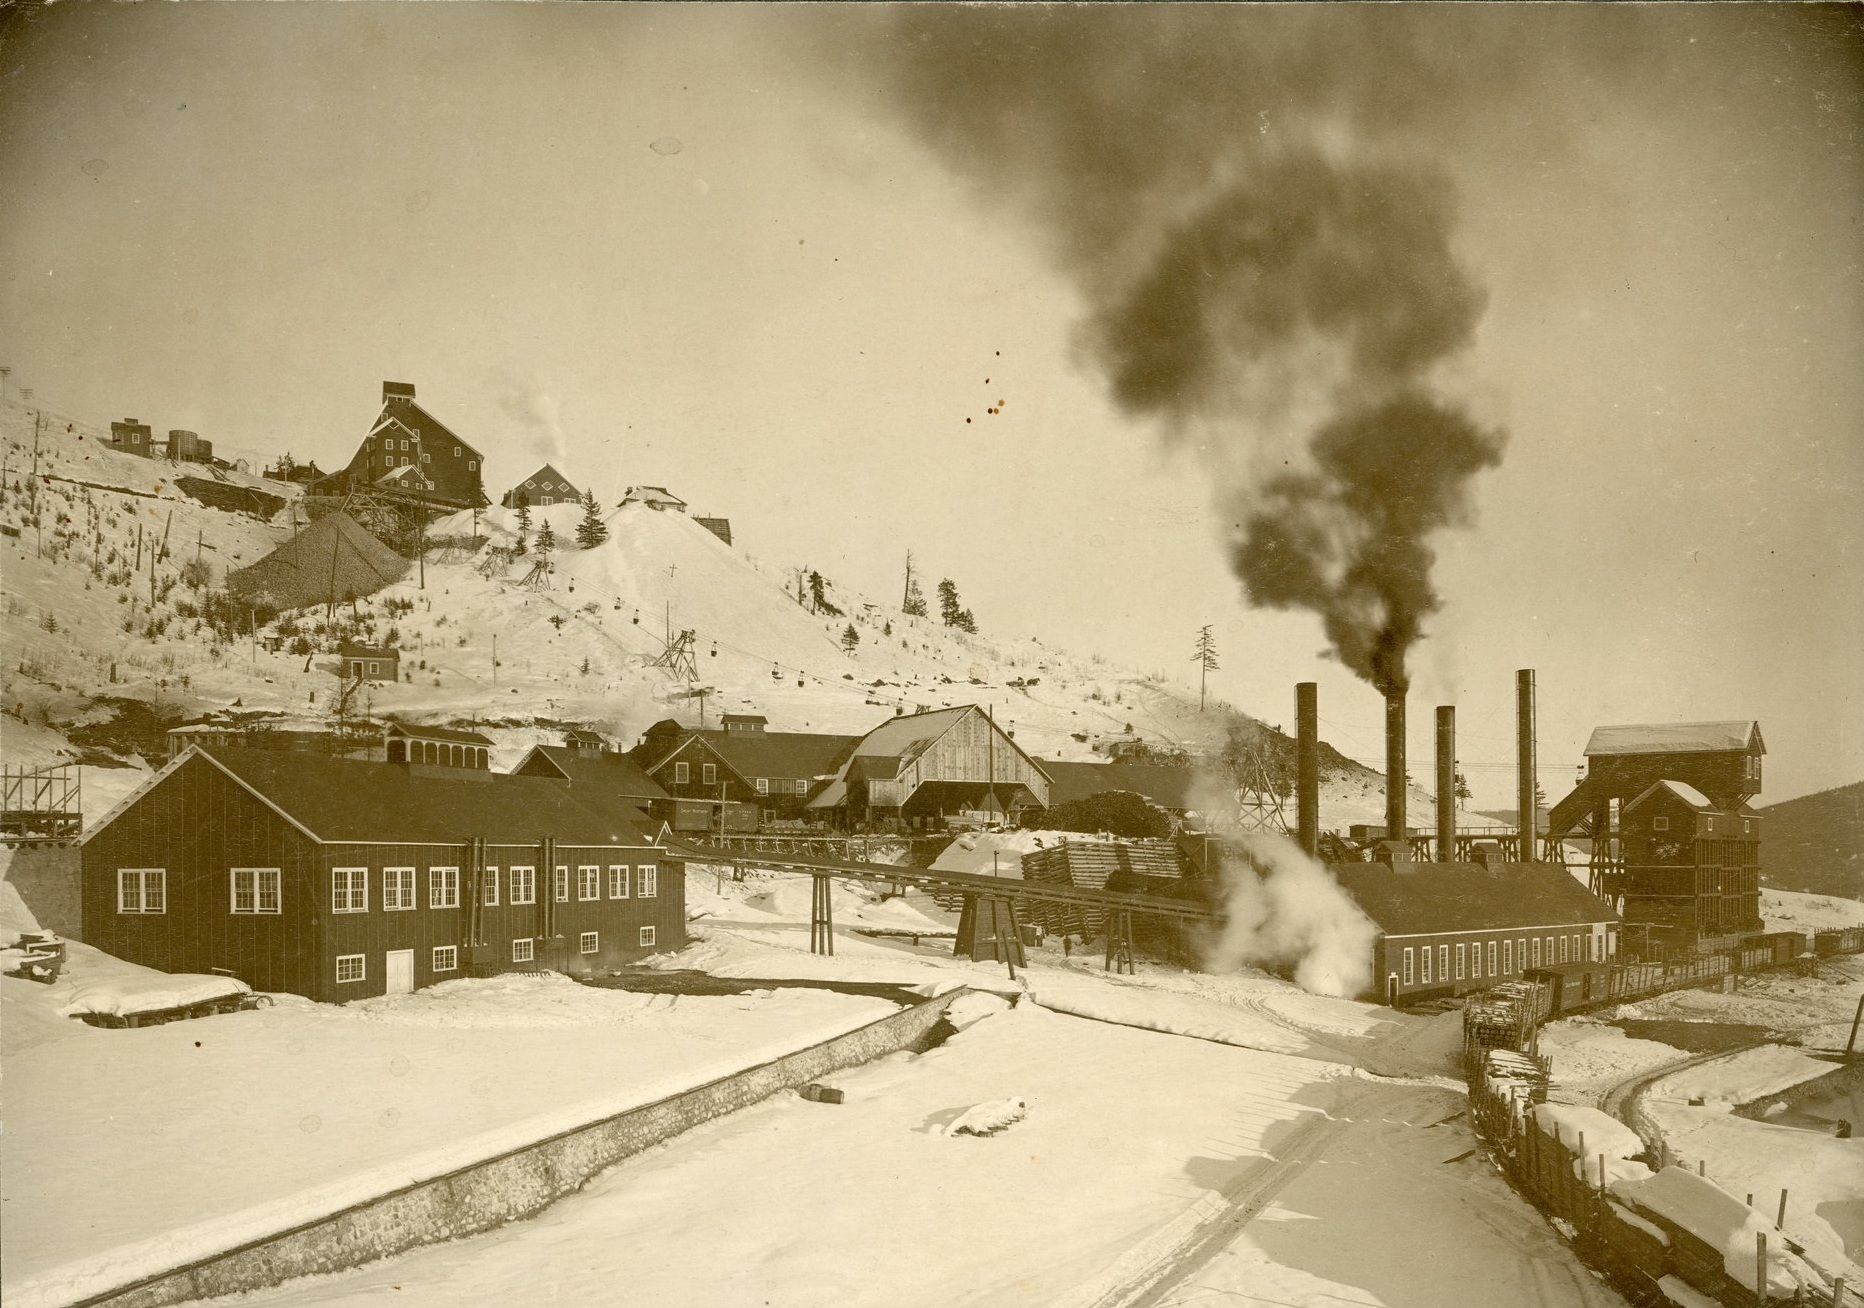 Photo 2304.0002: The workings of the Black Bear mine, with the Le Roi visible in the background circa 1897. This is now the site of the Rossland Museum & Discovery Centre's upper bench.